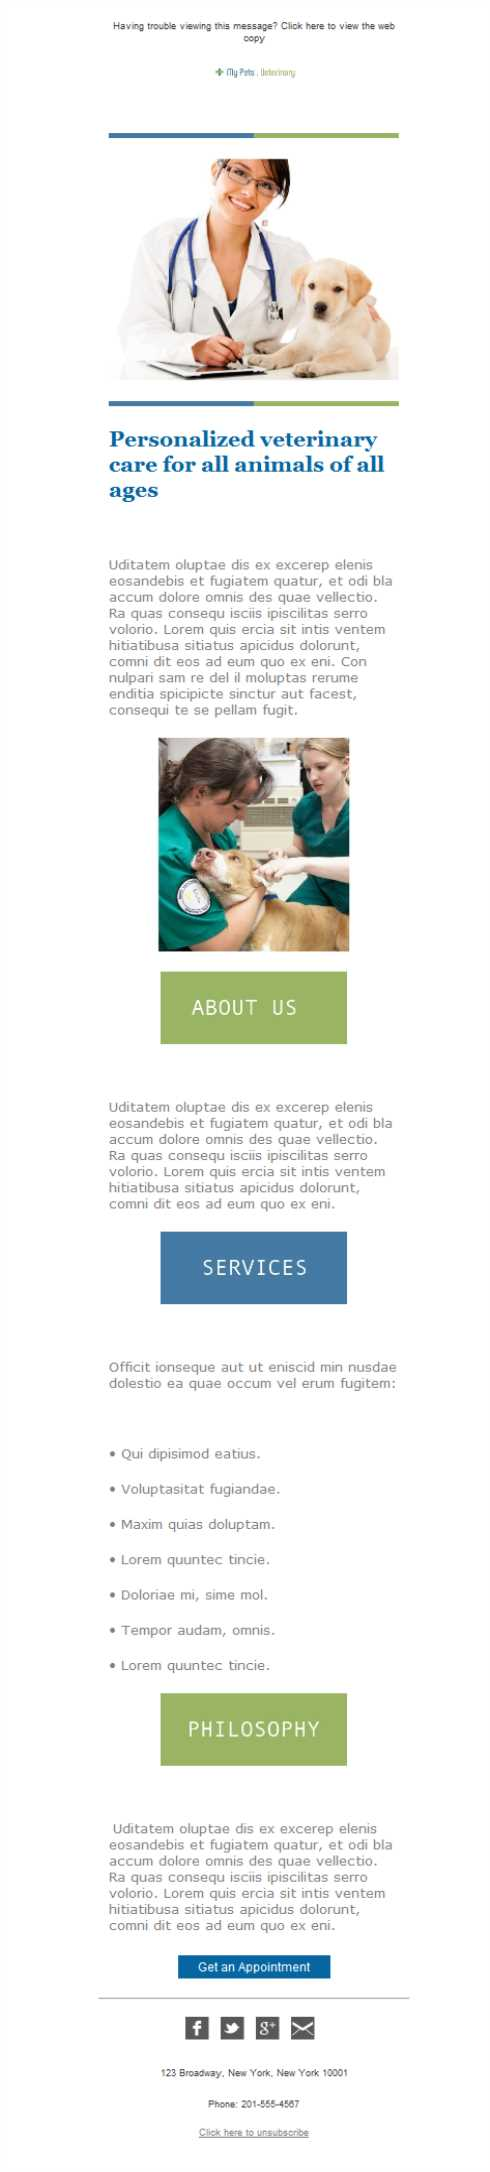 Templates Emailing Veterinary Clinic Sarbacane